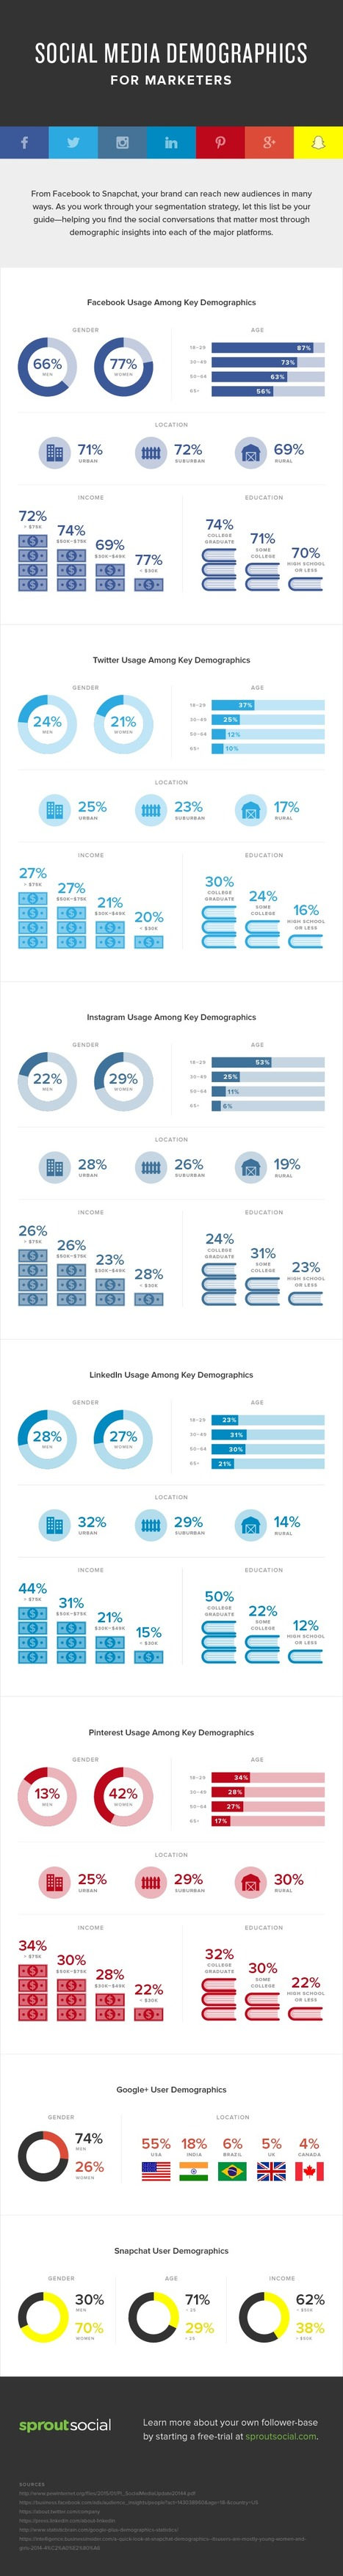 Who is On Facebook, LinkedIn, Pinterest, Snapchat and Other Networks? [Infographic] | digital marketing strategy | Scoop.it